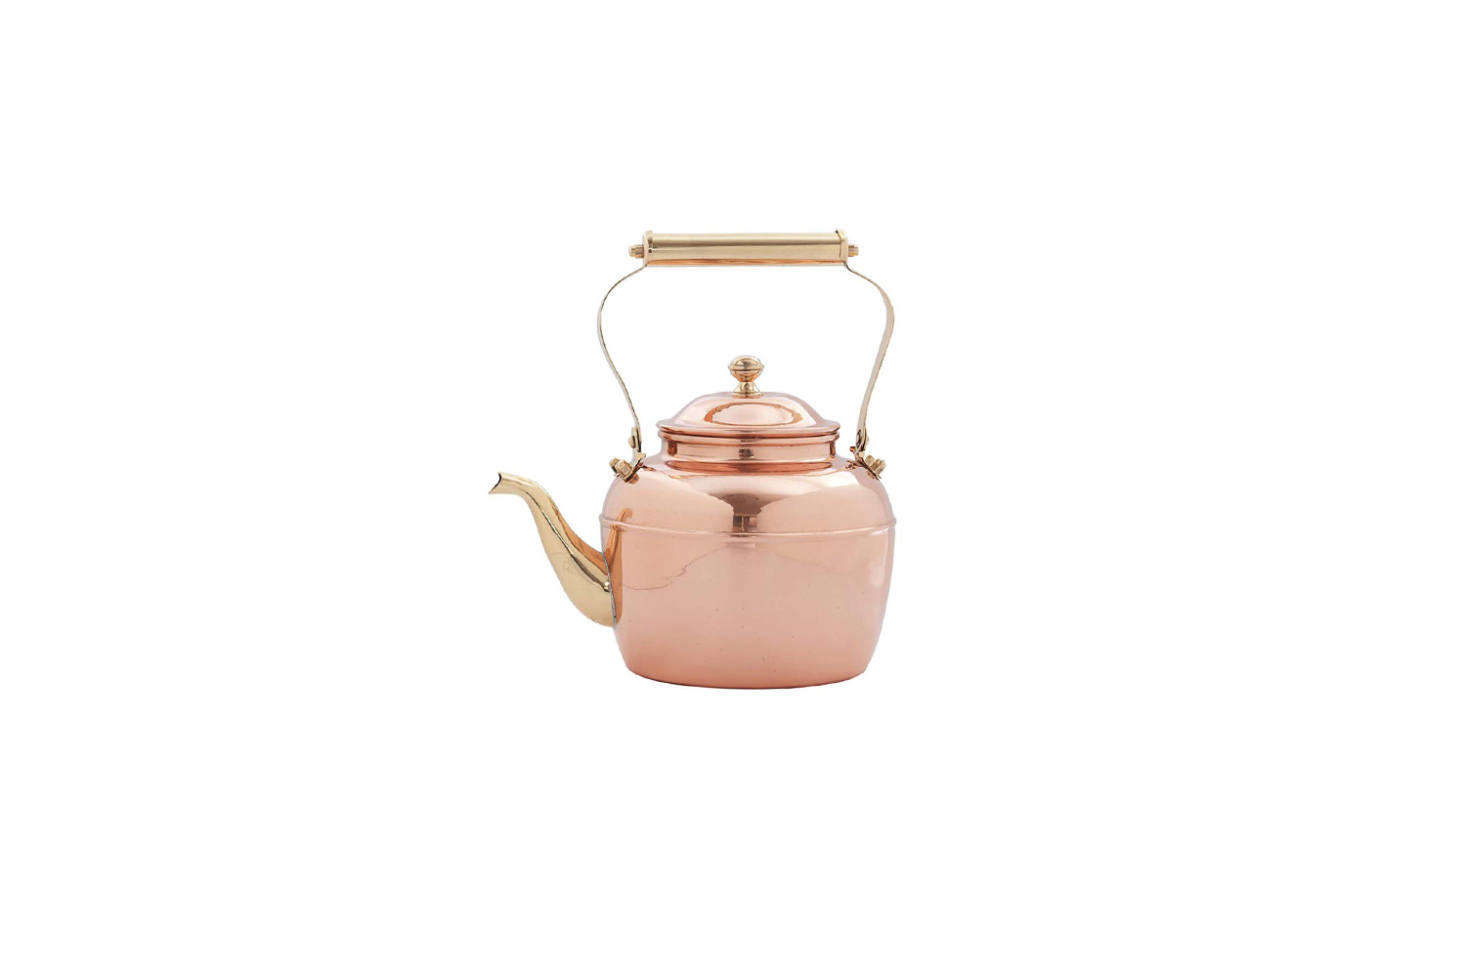 The Old Dutch Solid Copper Teakettle with Brass Handle is $5src=